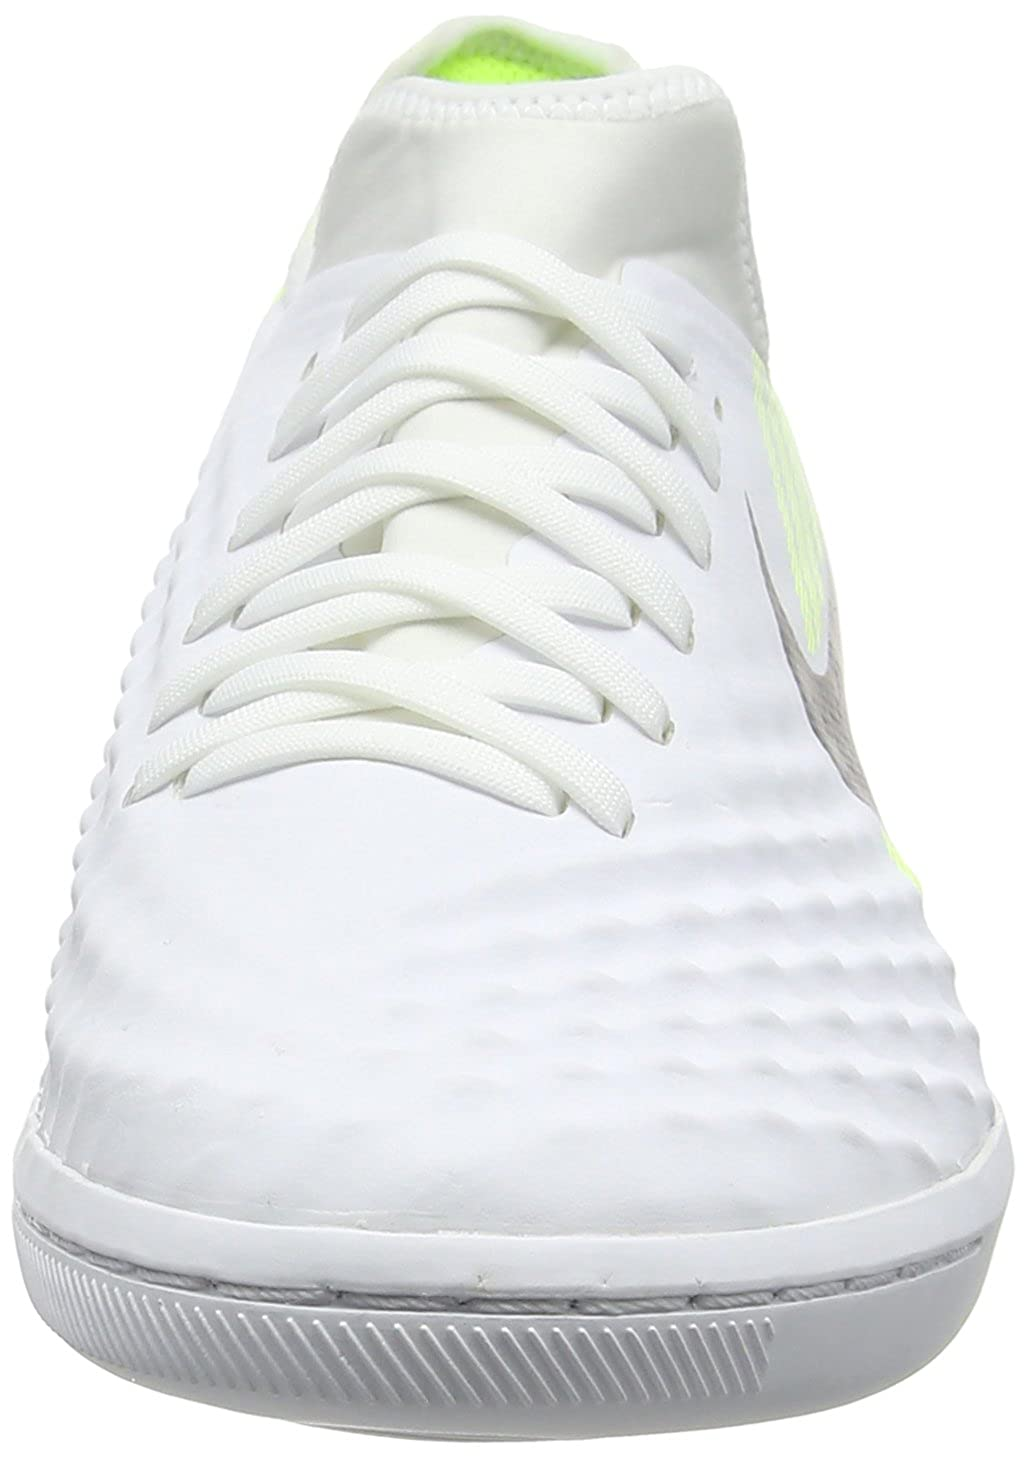 7c9ce3c495f3 Nike Magistax Finale II Indoor Shoes  White  (11. 5)  Buy Online at Low  Prices in India - Amazon.in